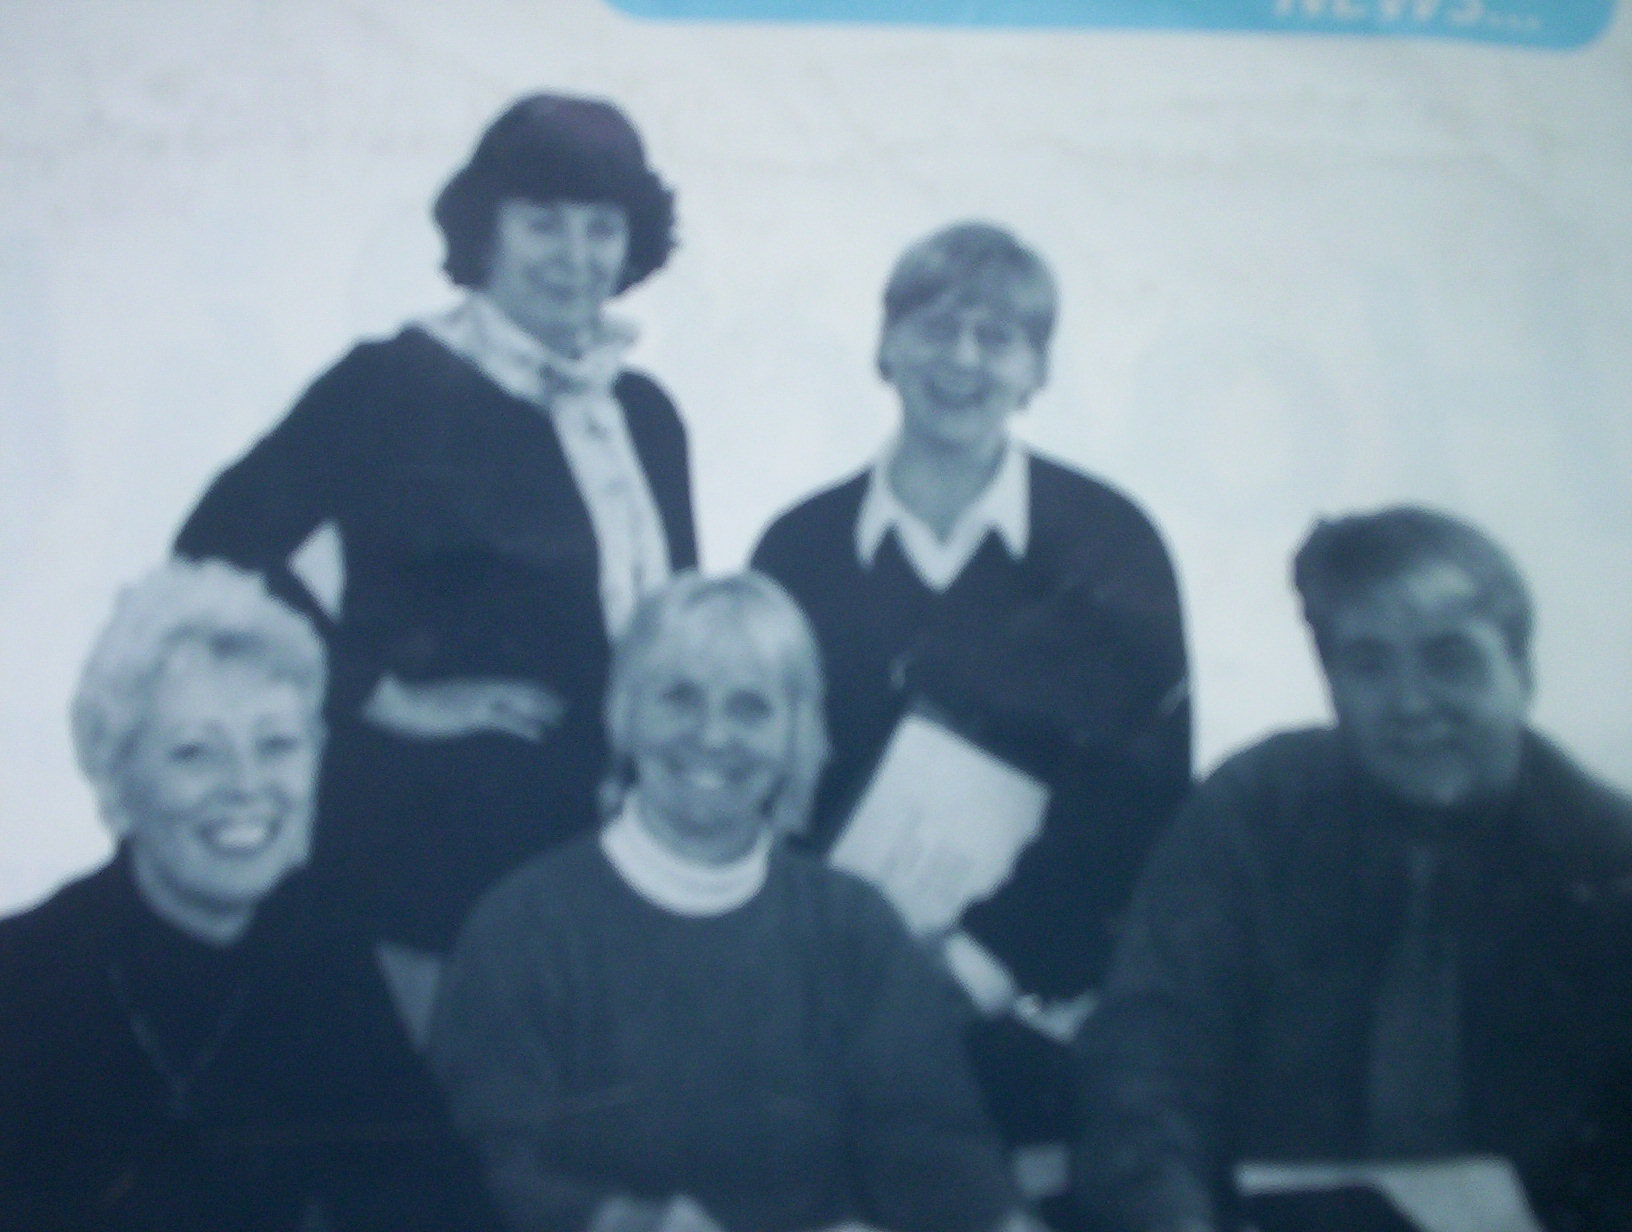 A photo taken in the mid nineties of some of the people involved in developing the course